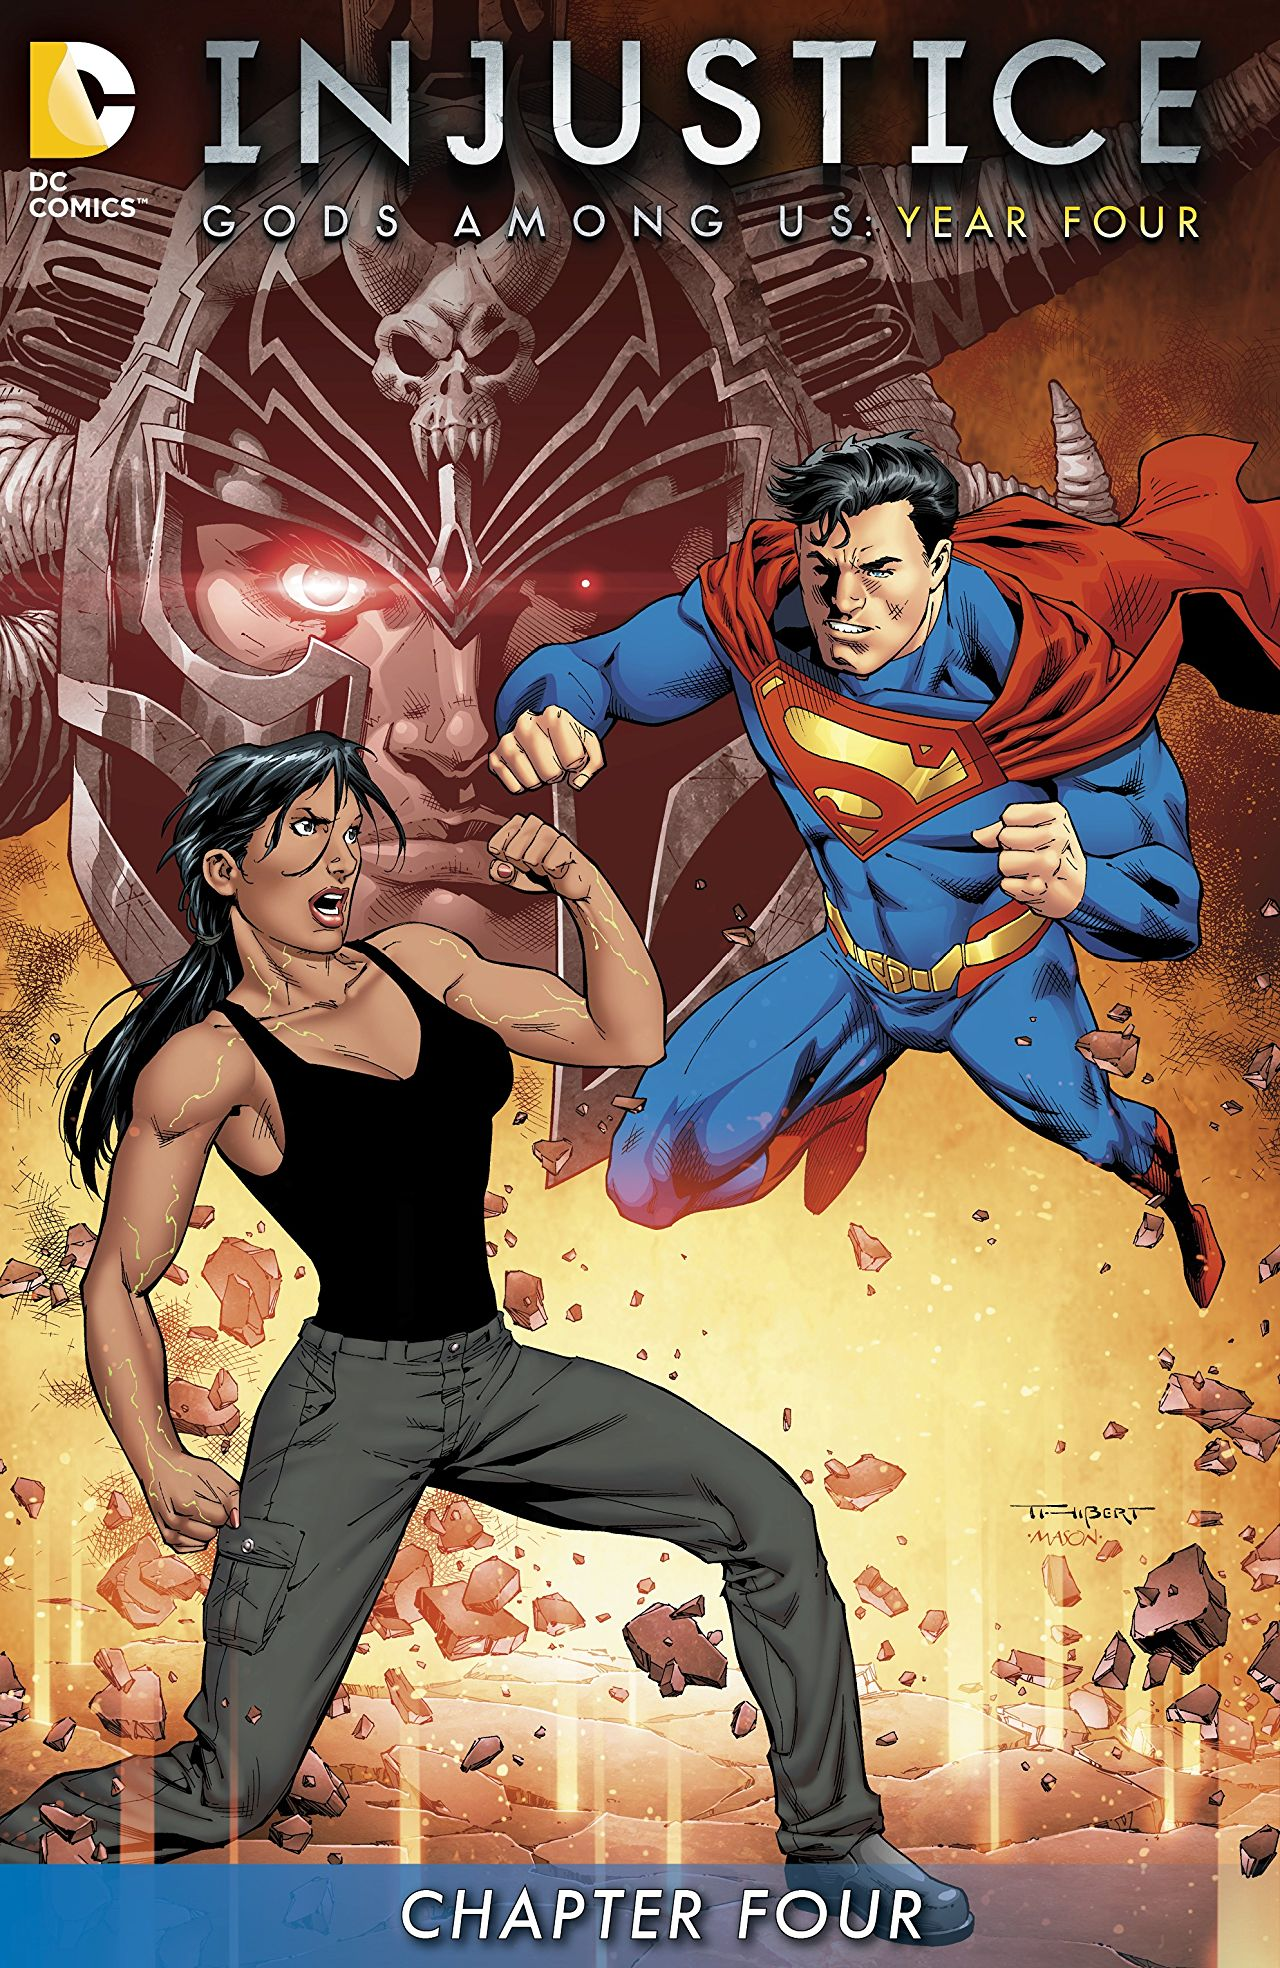 Injustice: Gods Among Us: Year Four Vol 1 4 (Digital)